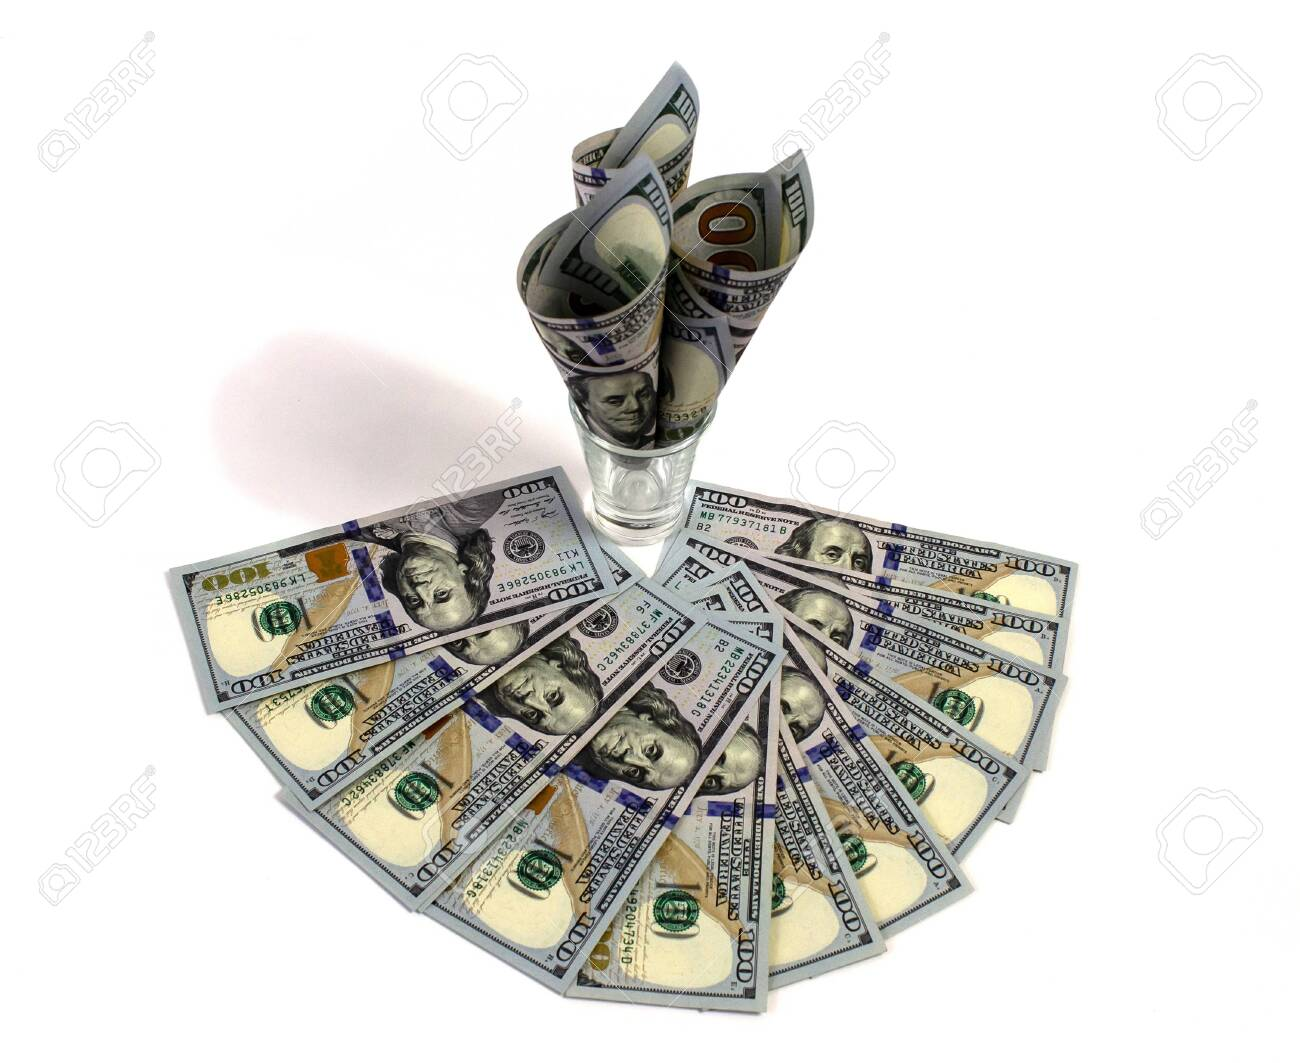 isolated on white background Dollars in a glass, a symbol of the crisis, venality, wealth - 150088060